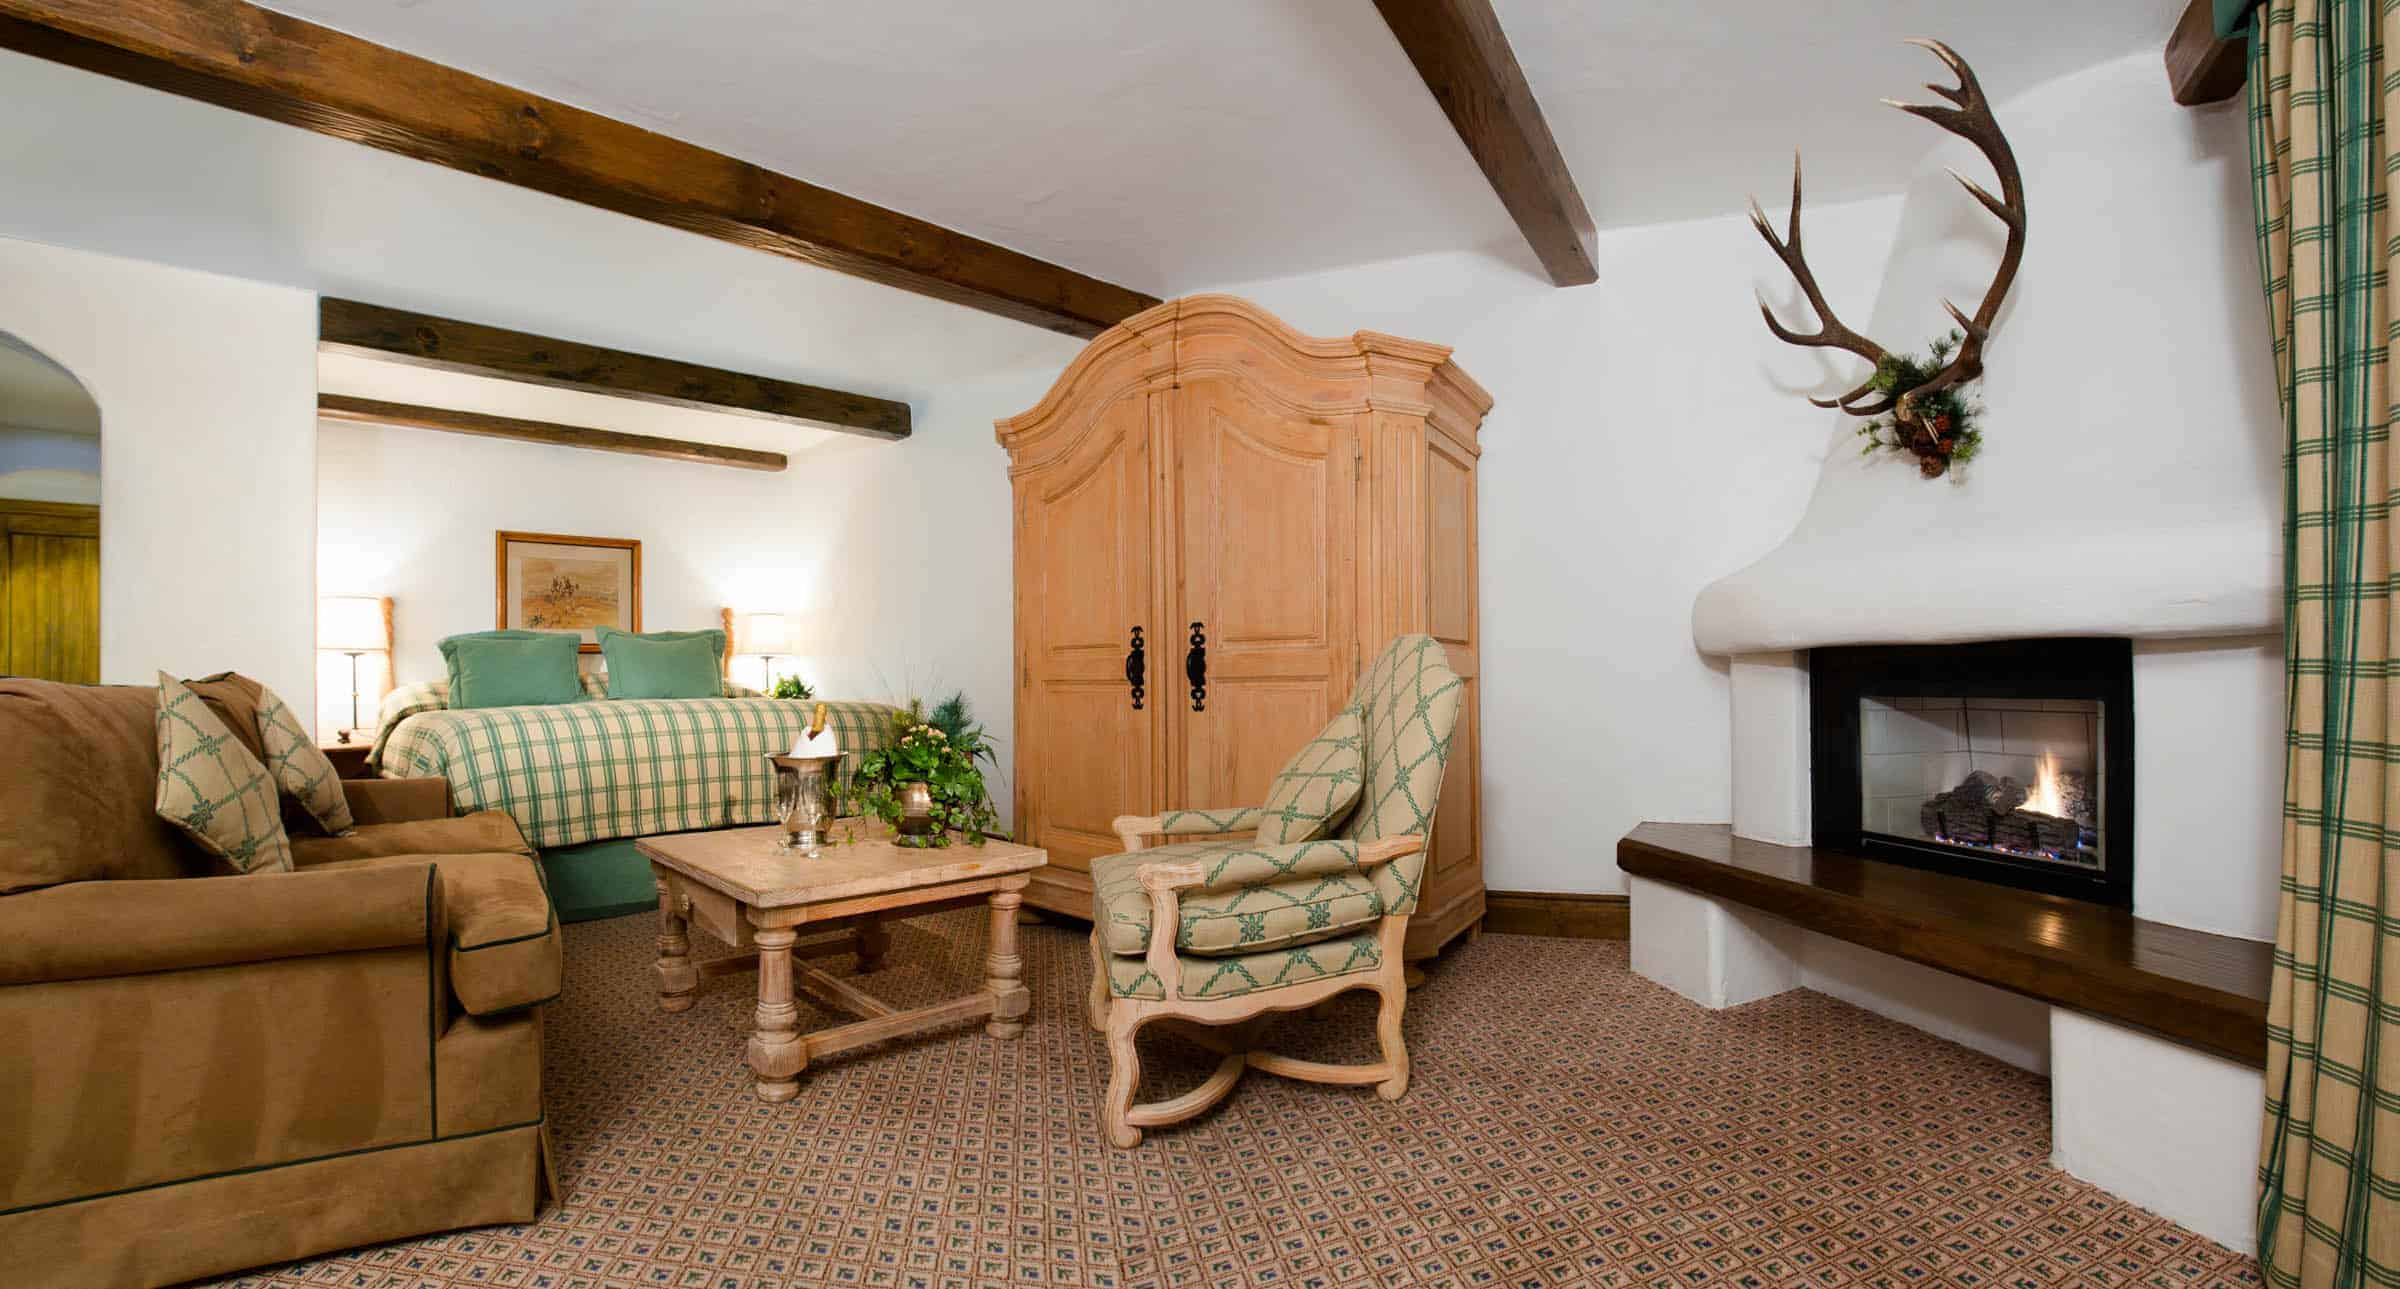 Suite with living room, fireplace, sofa, chairs, and armoire